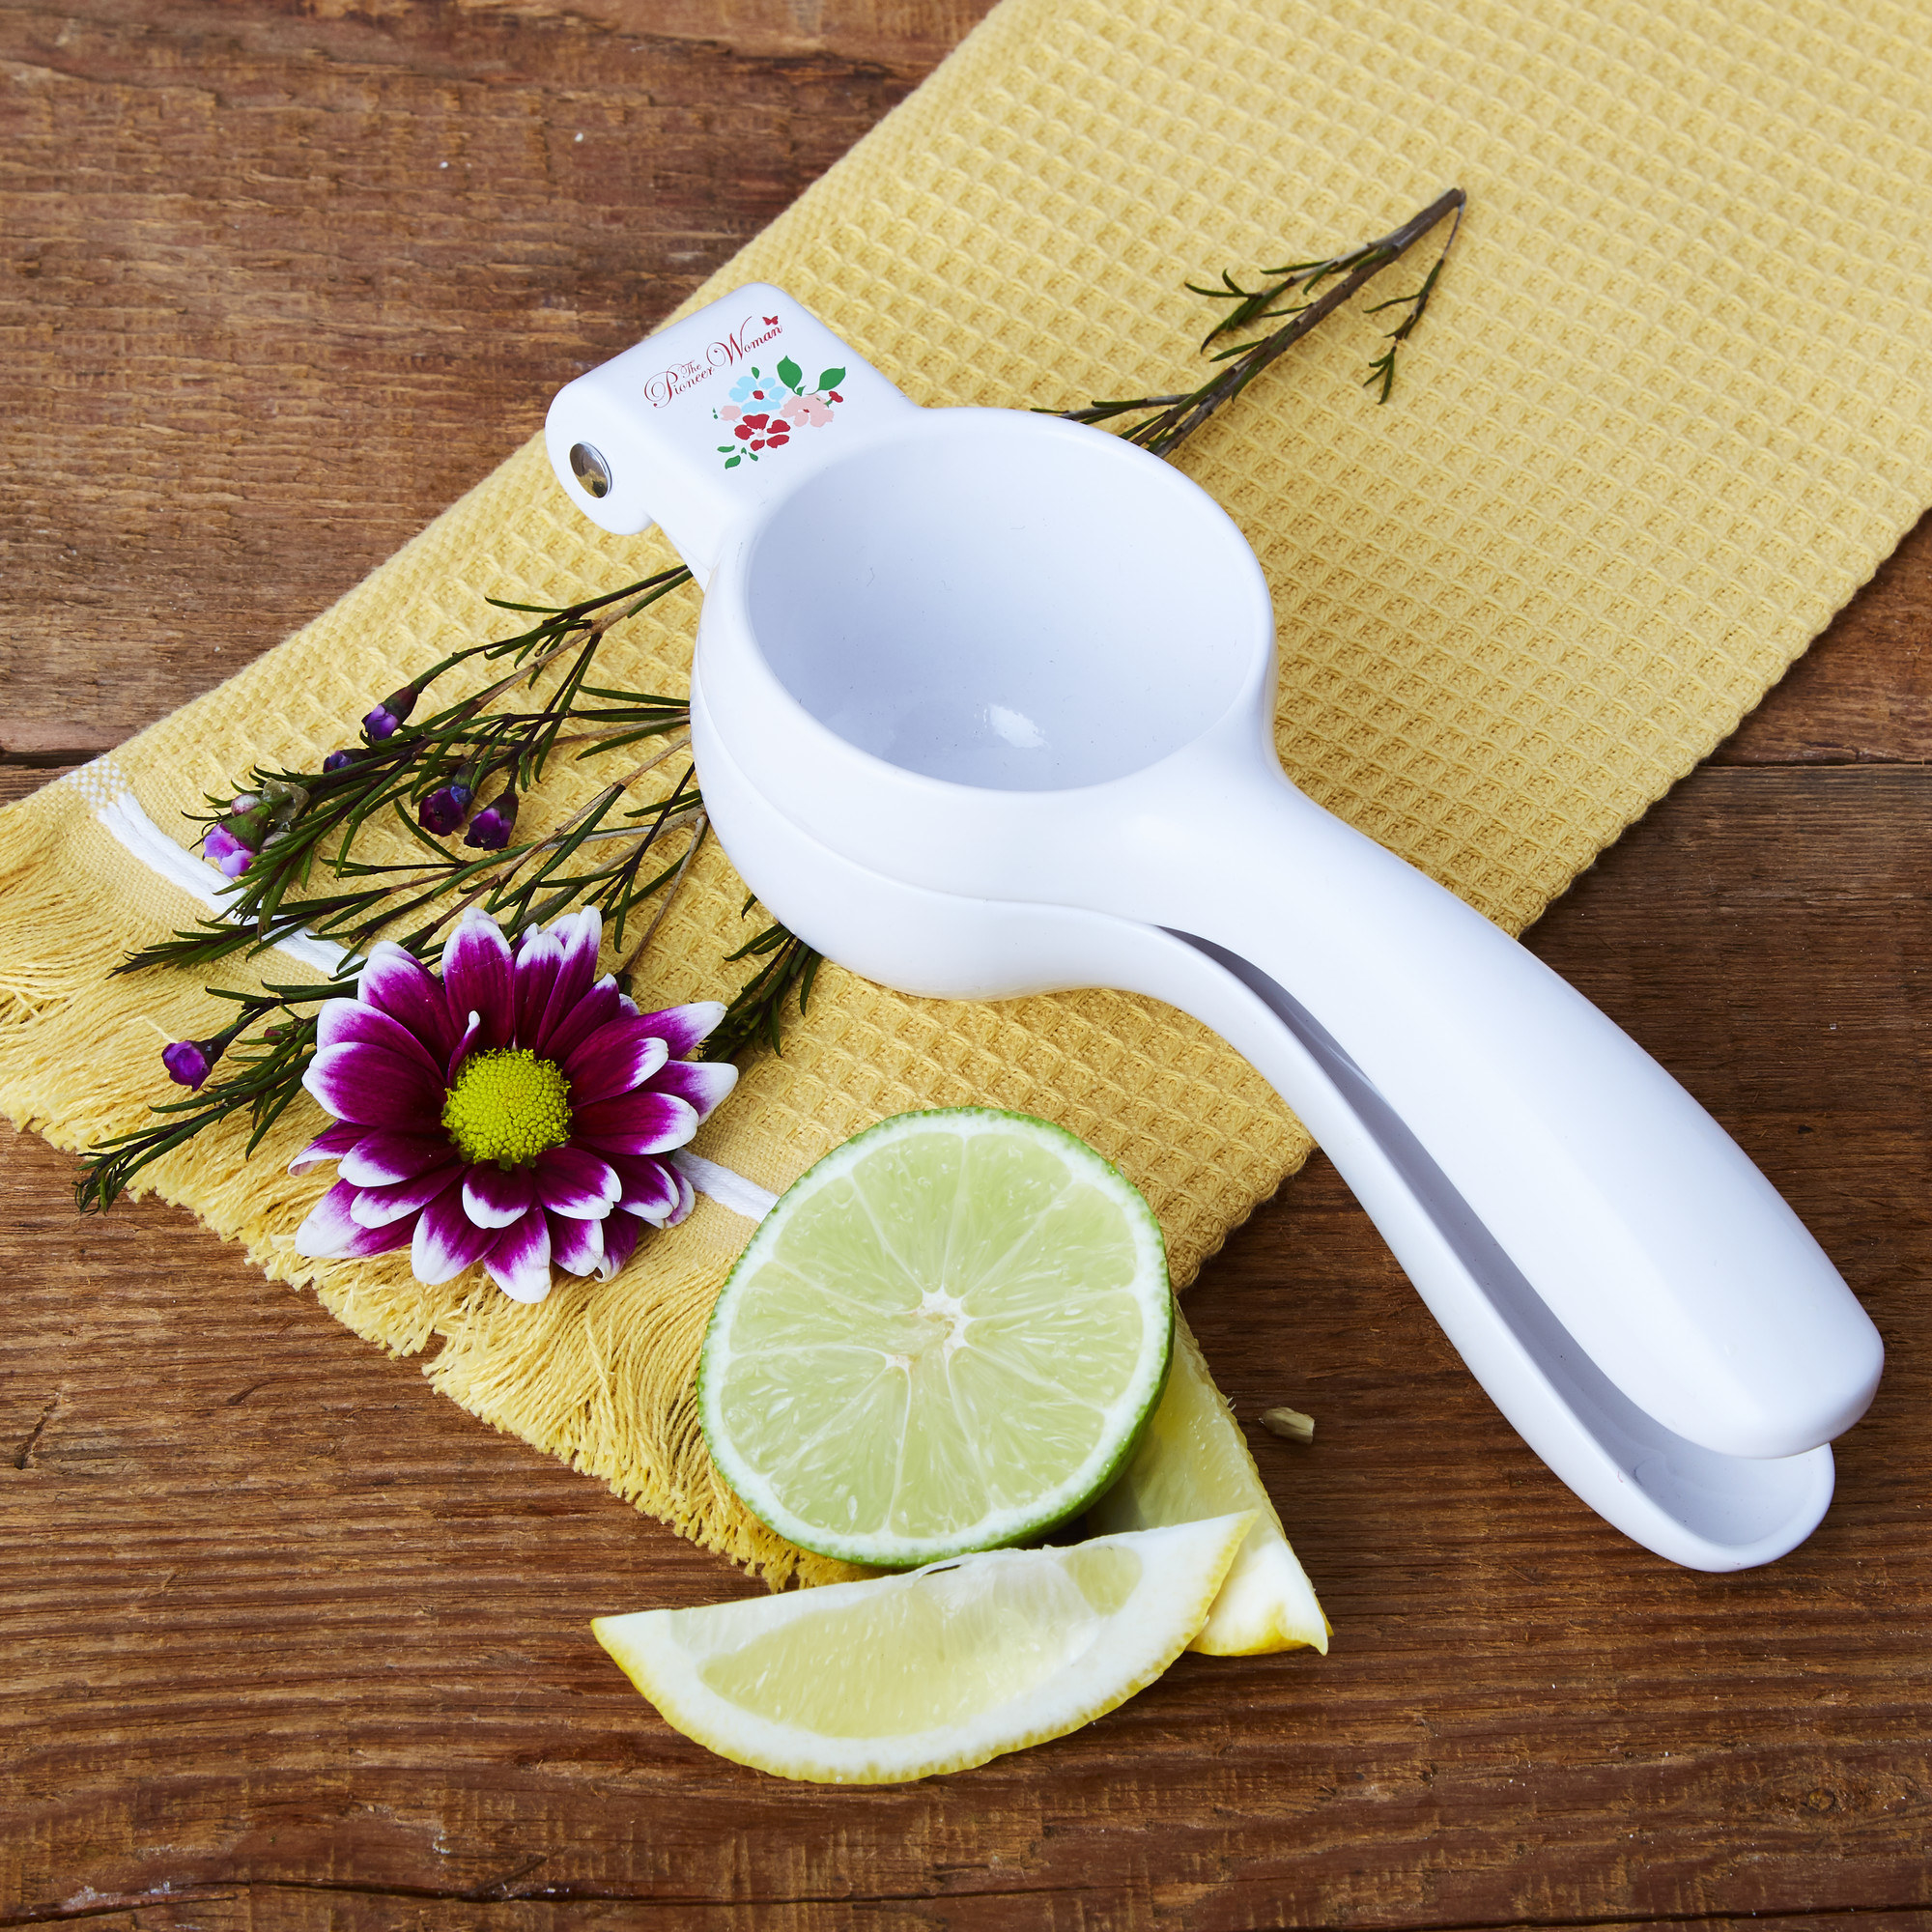 The citrus press beside a lemon and lime on a yellow dish towel